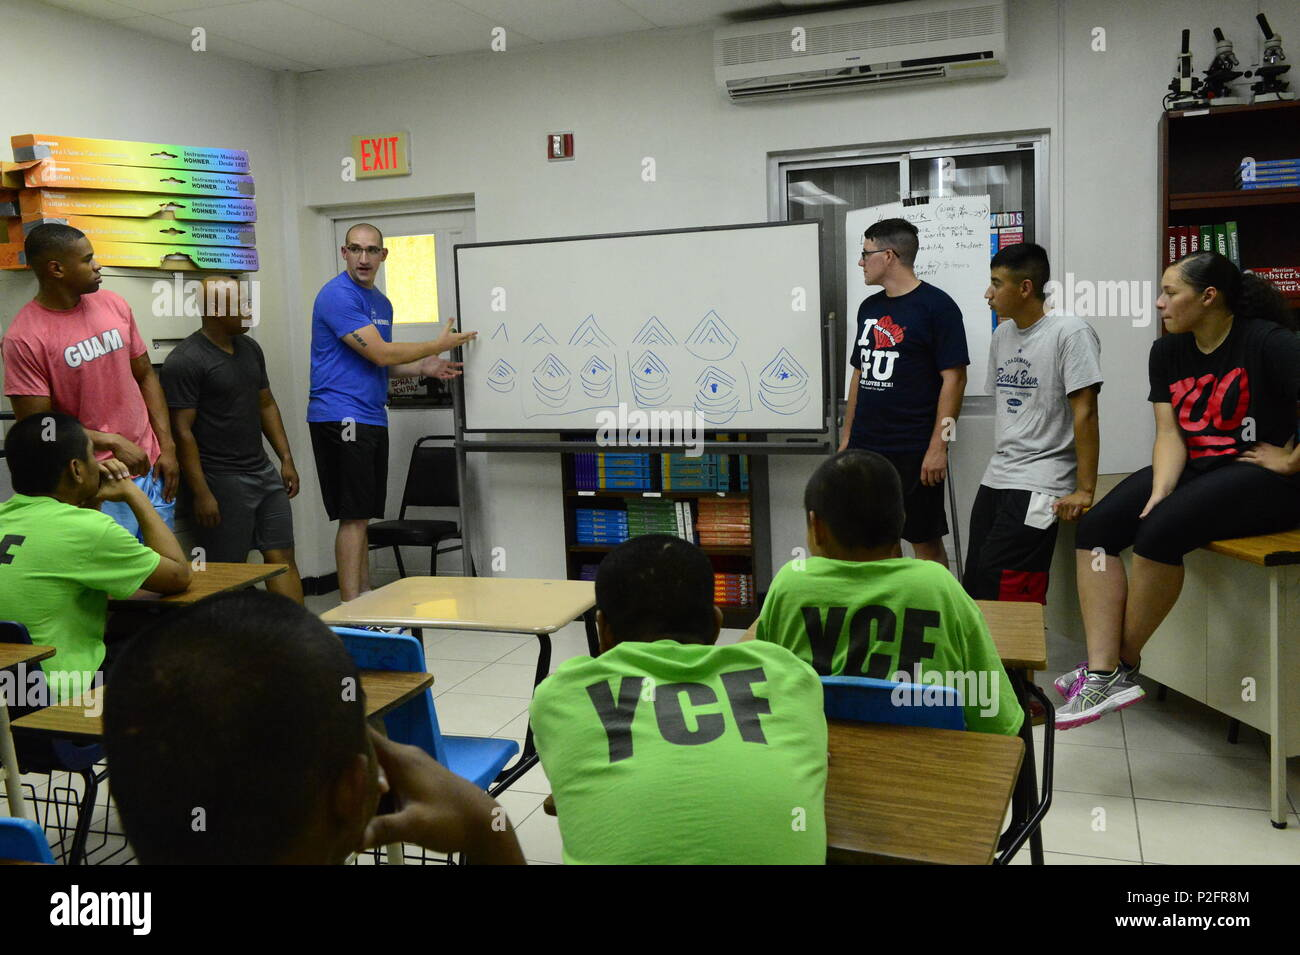 Marines From Marine Aircraft Group 12 Talk To Incarcerated Youth At The Correctional Facility In